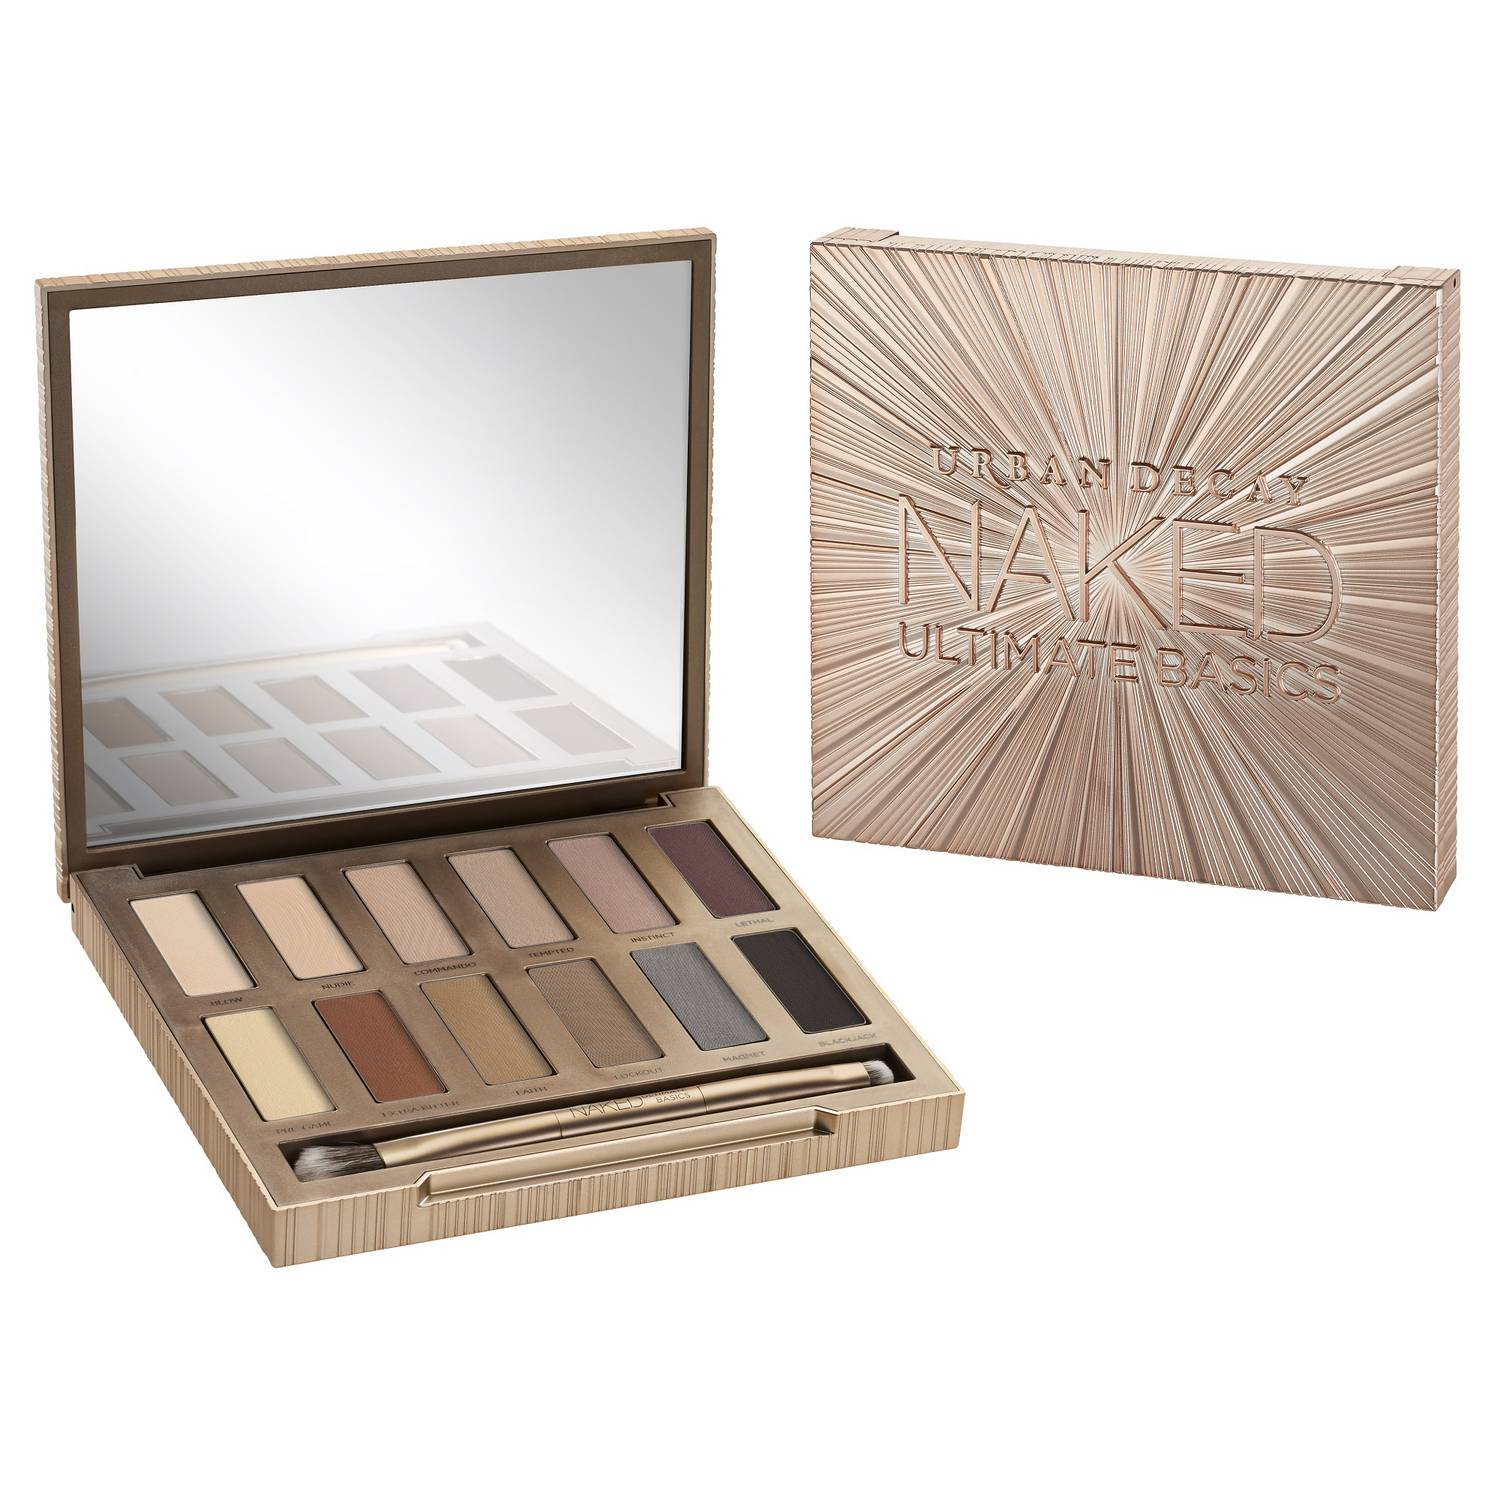 Urban Decay Naked Ultimate Basics, paleta cieni